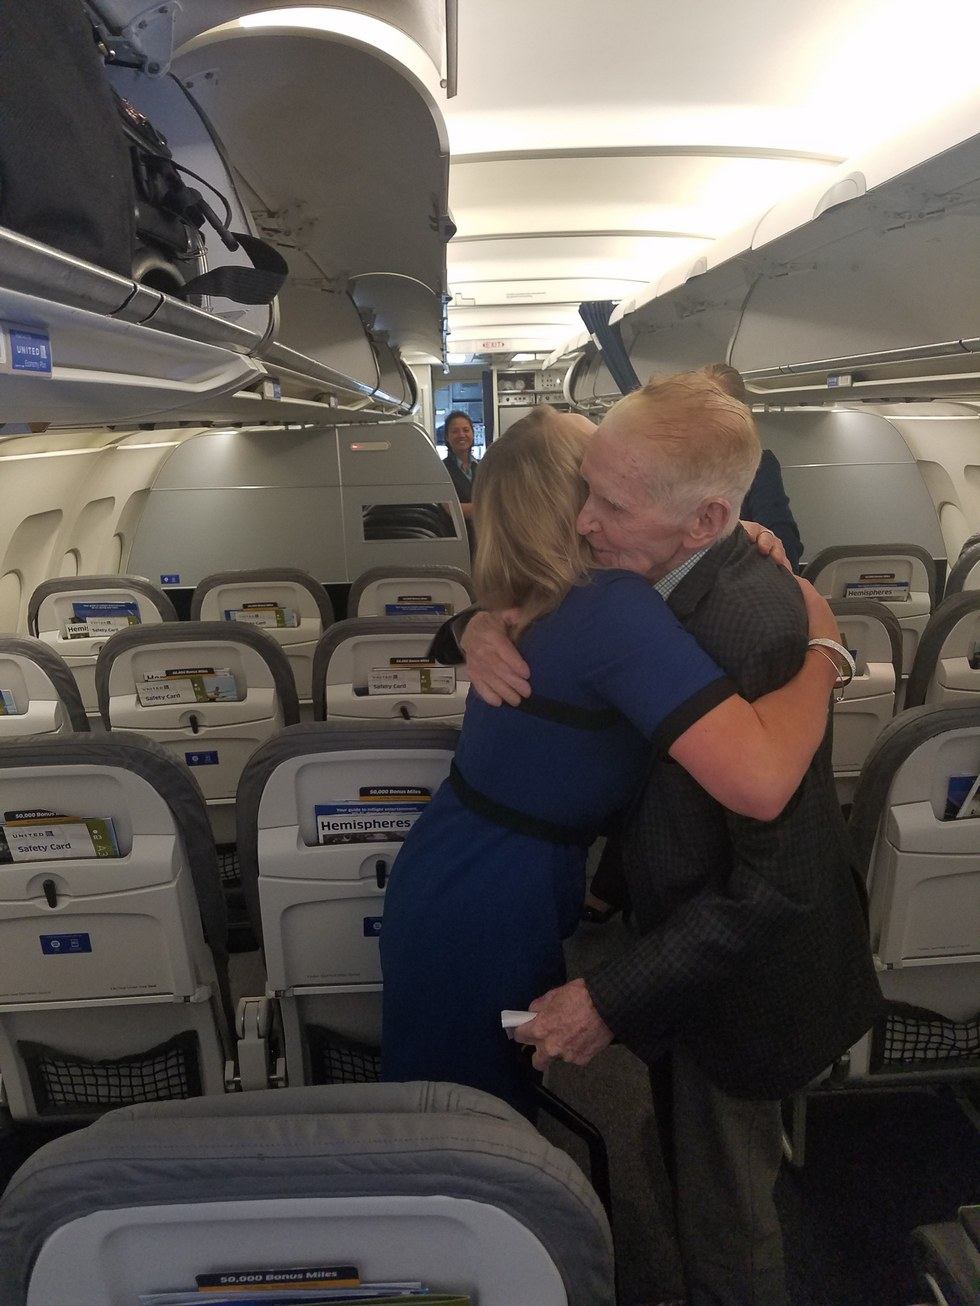 Natasha surprises Mr. McEneaney on his flight home to Texas